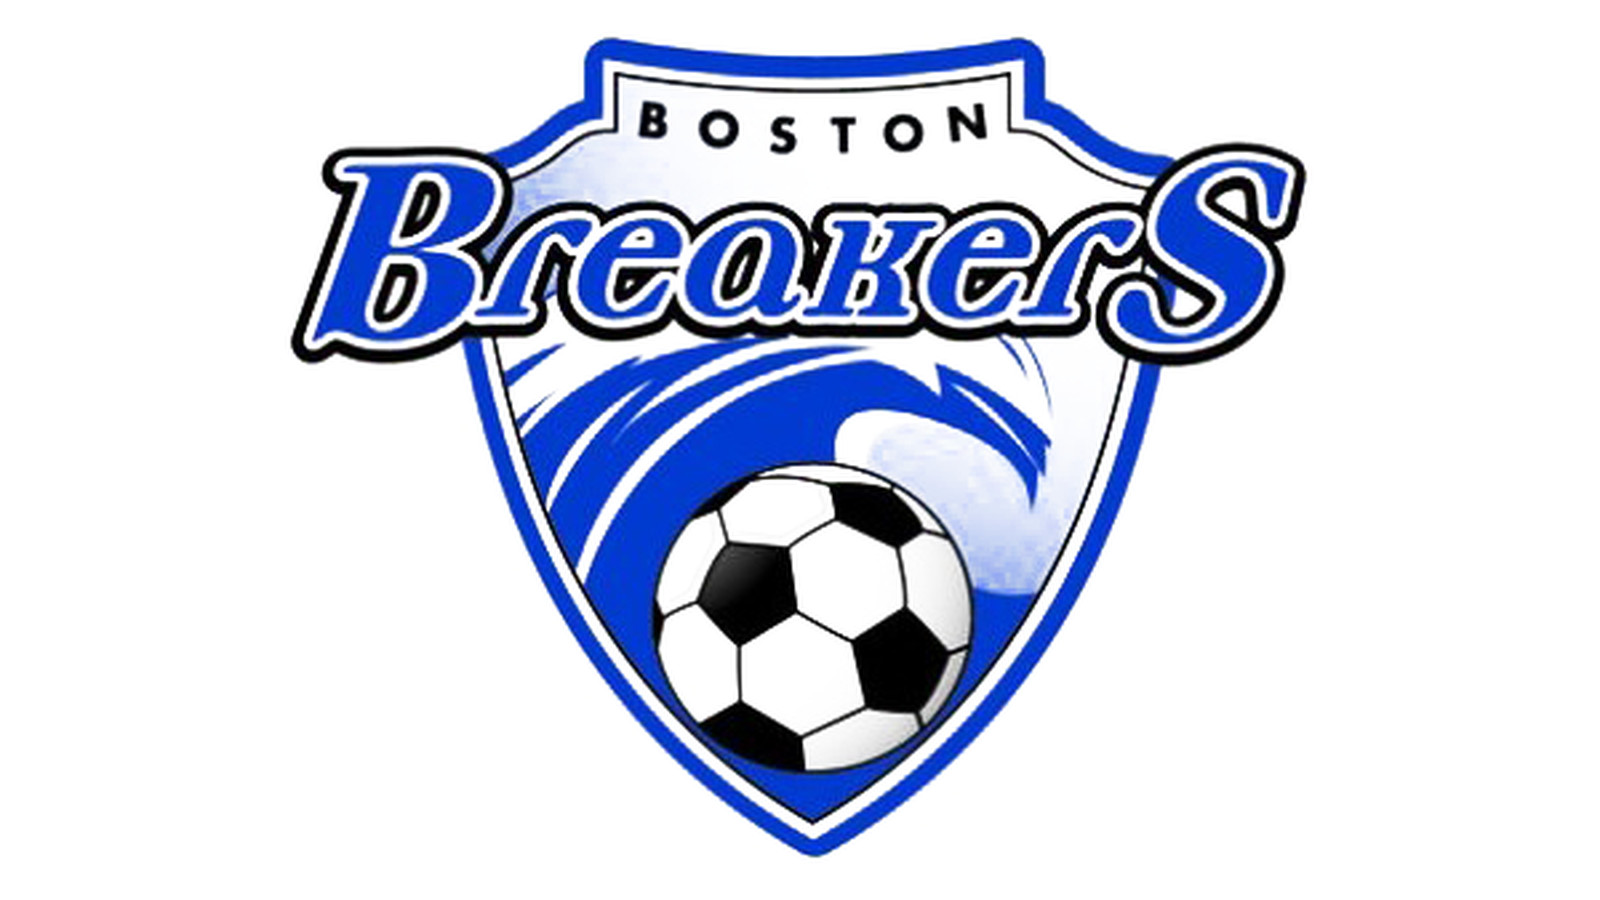 Boston_20breakers_20logo_20wide.0